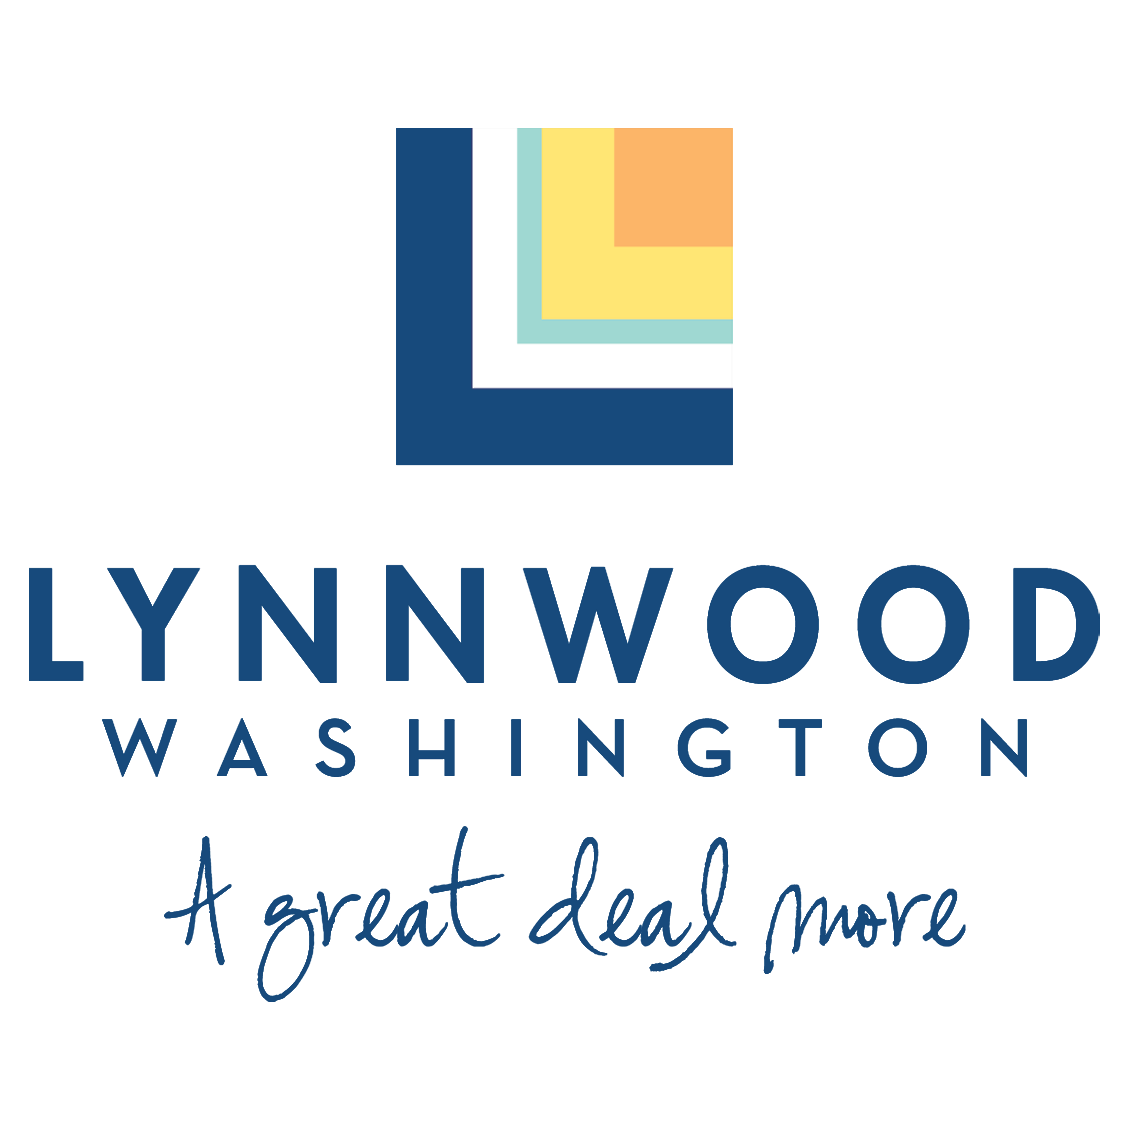 Picture that has the Lynnwood logo and says